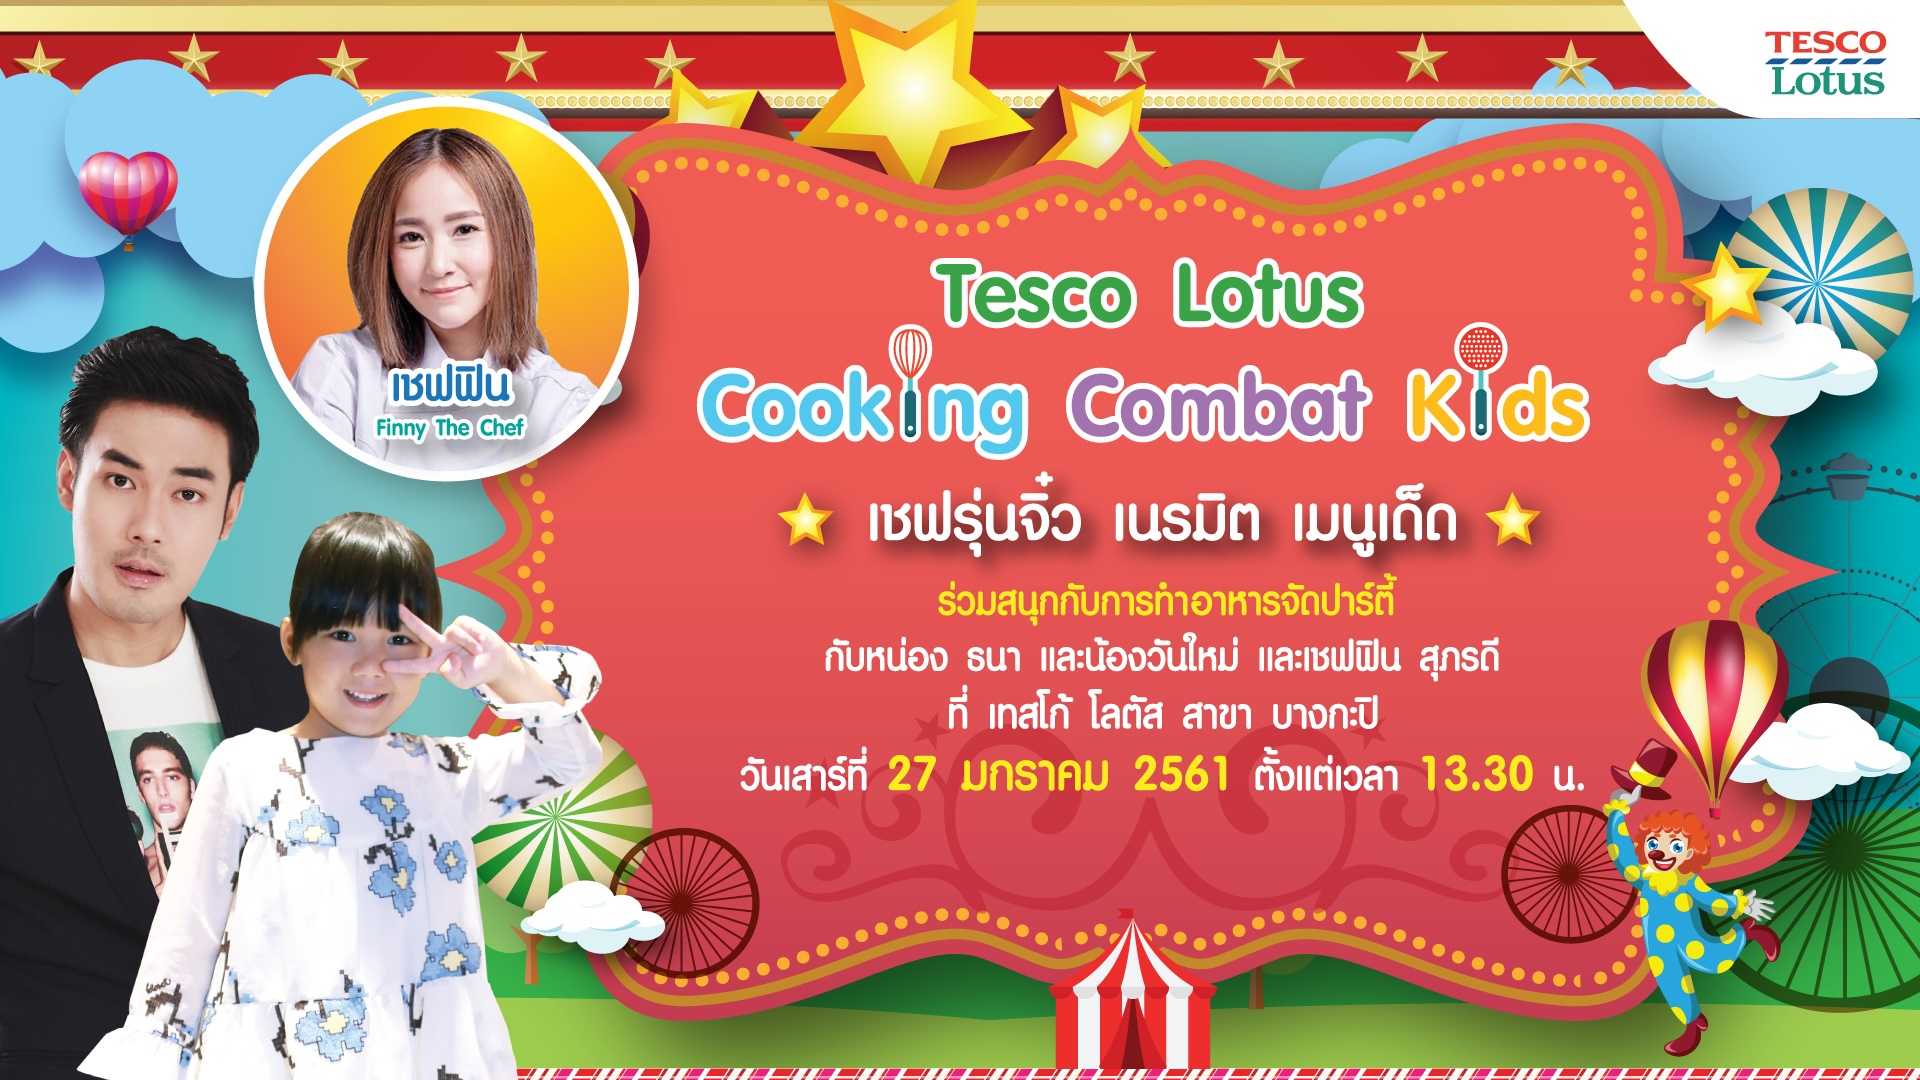 Tesco - Cooking Combat Kids